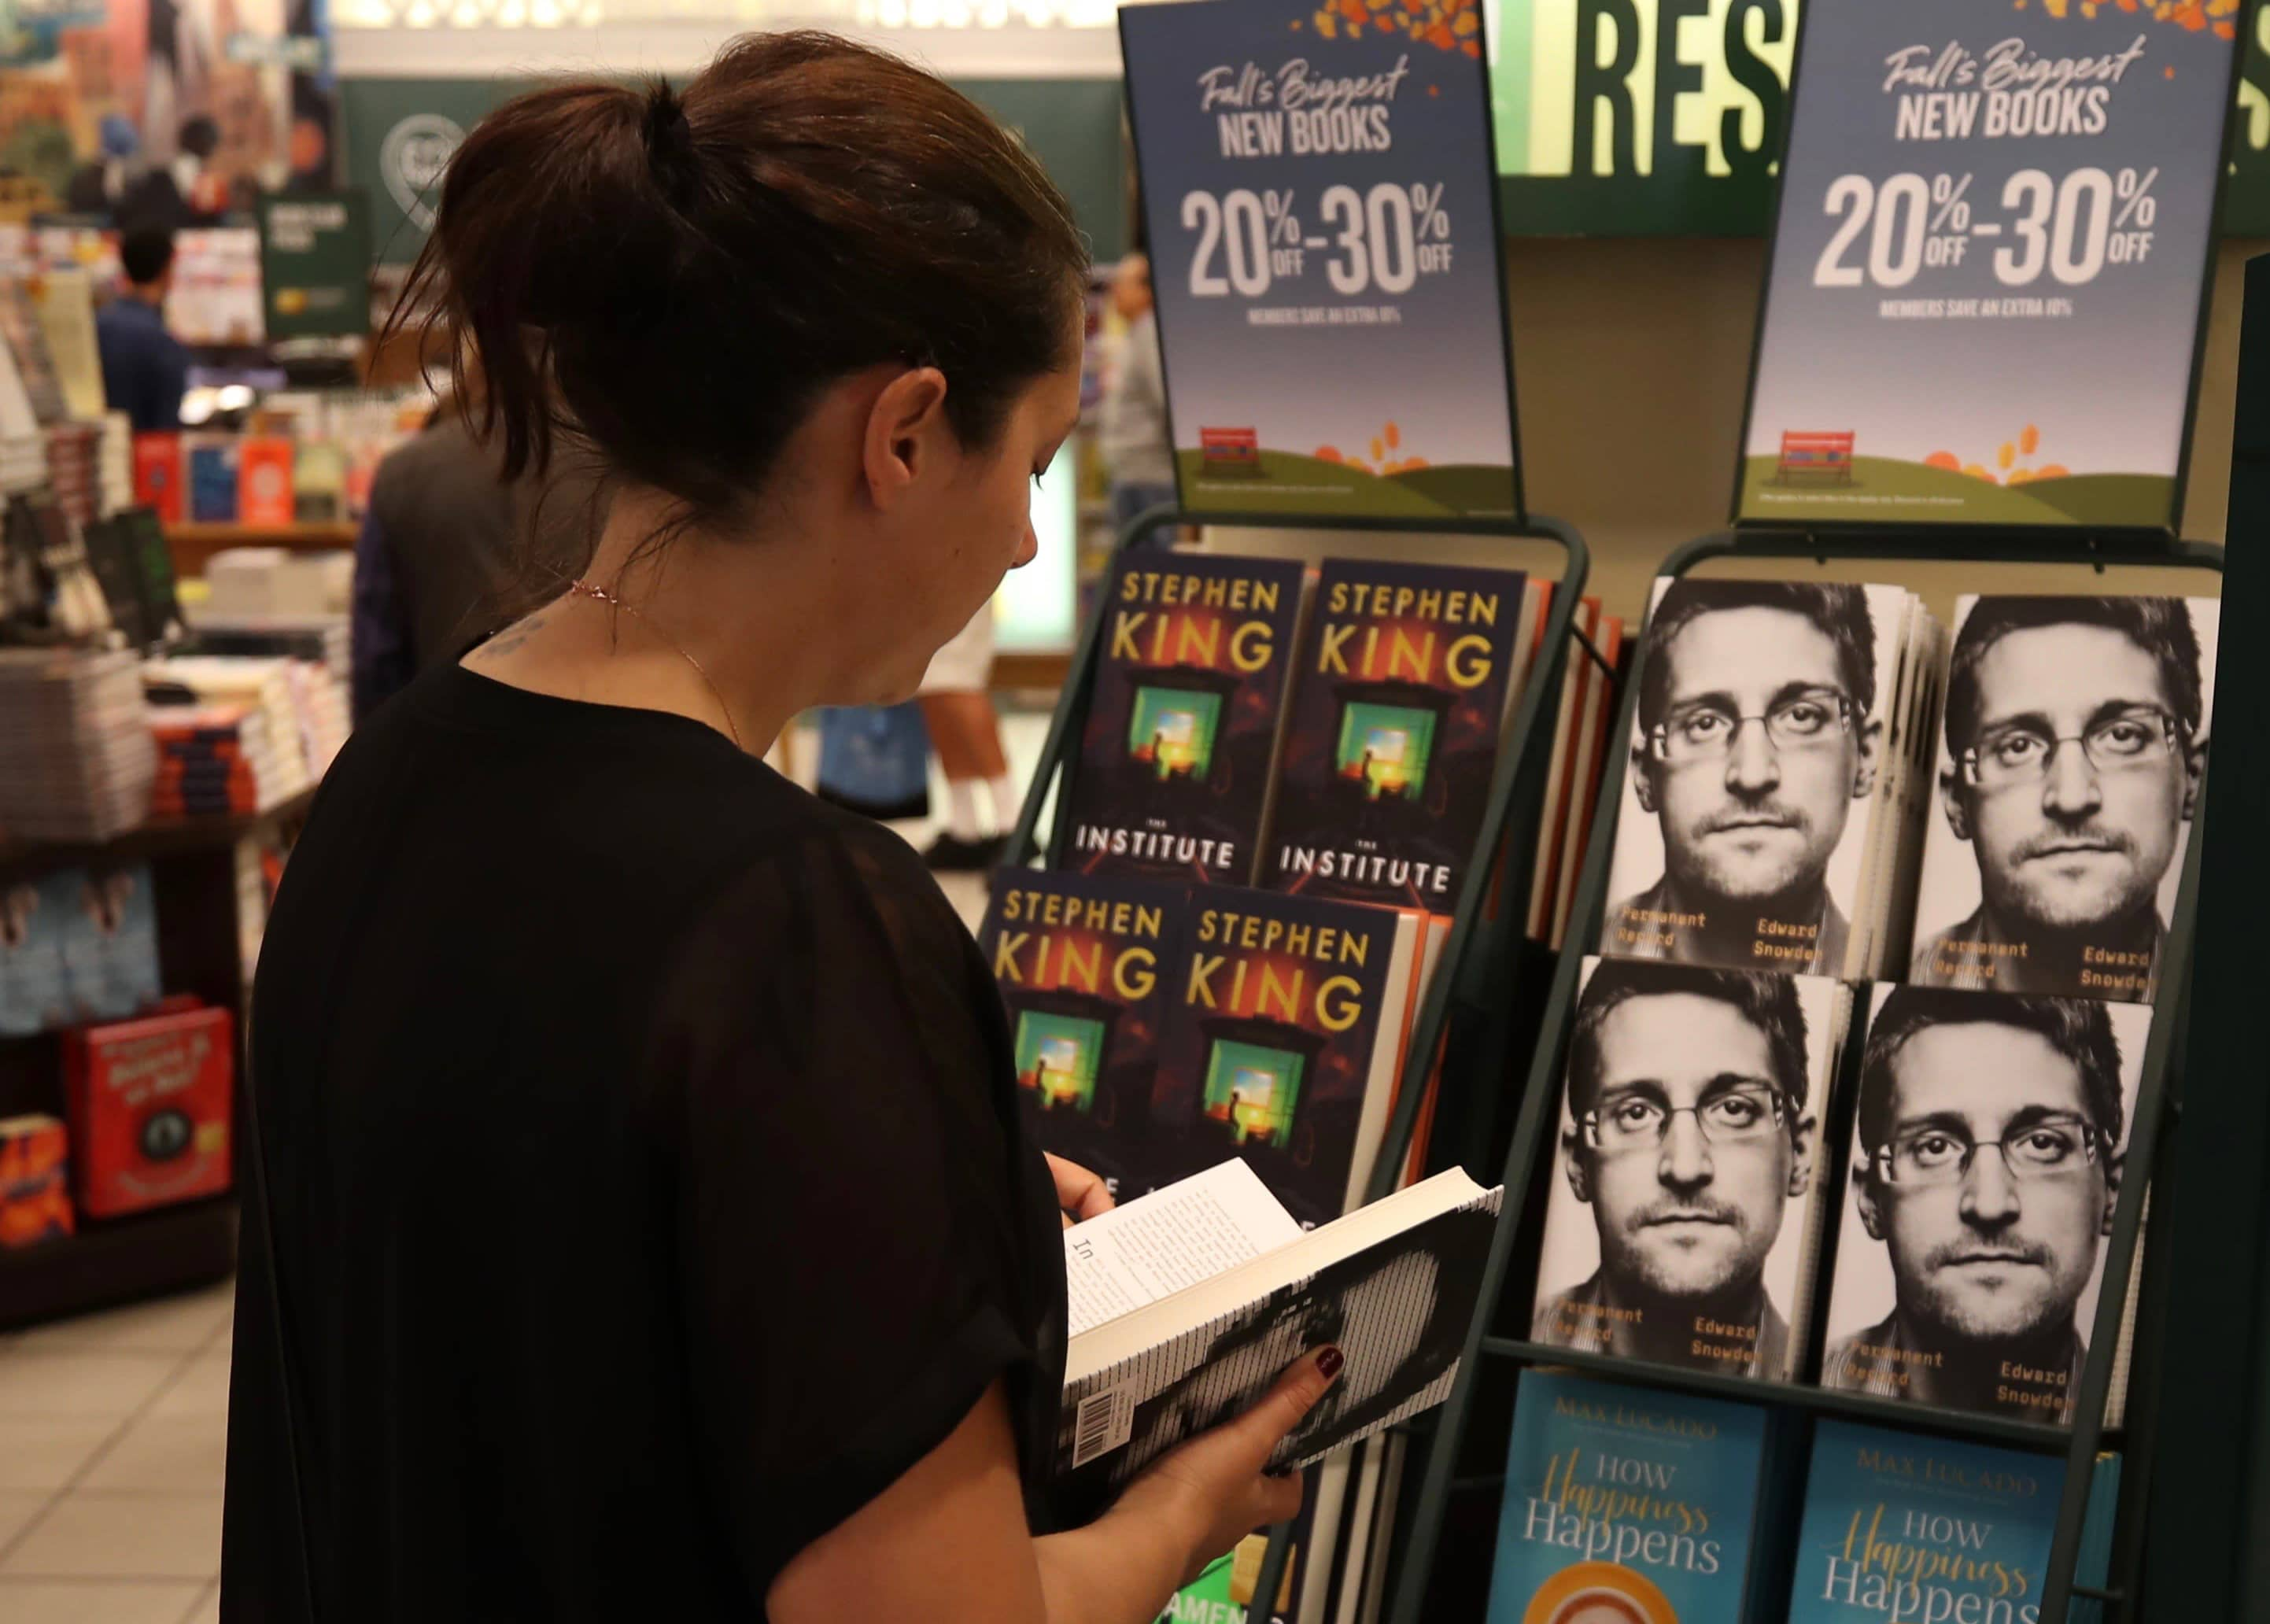 US sues Edward Snowden for failing to submit book to government for clearance